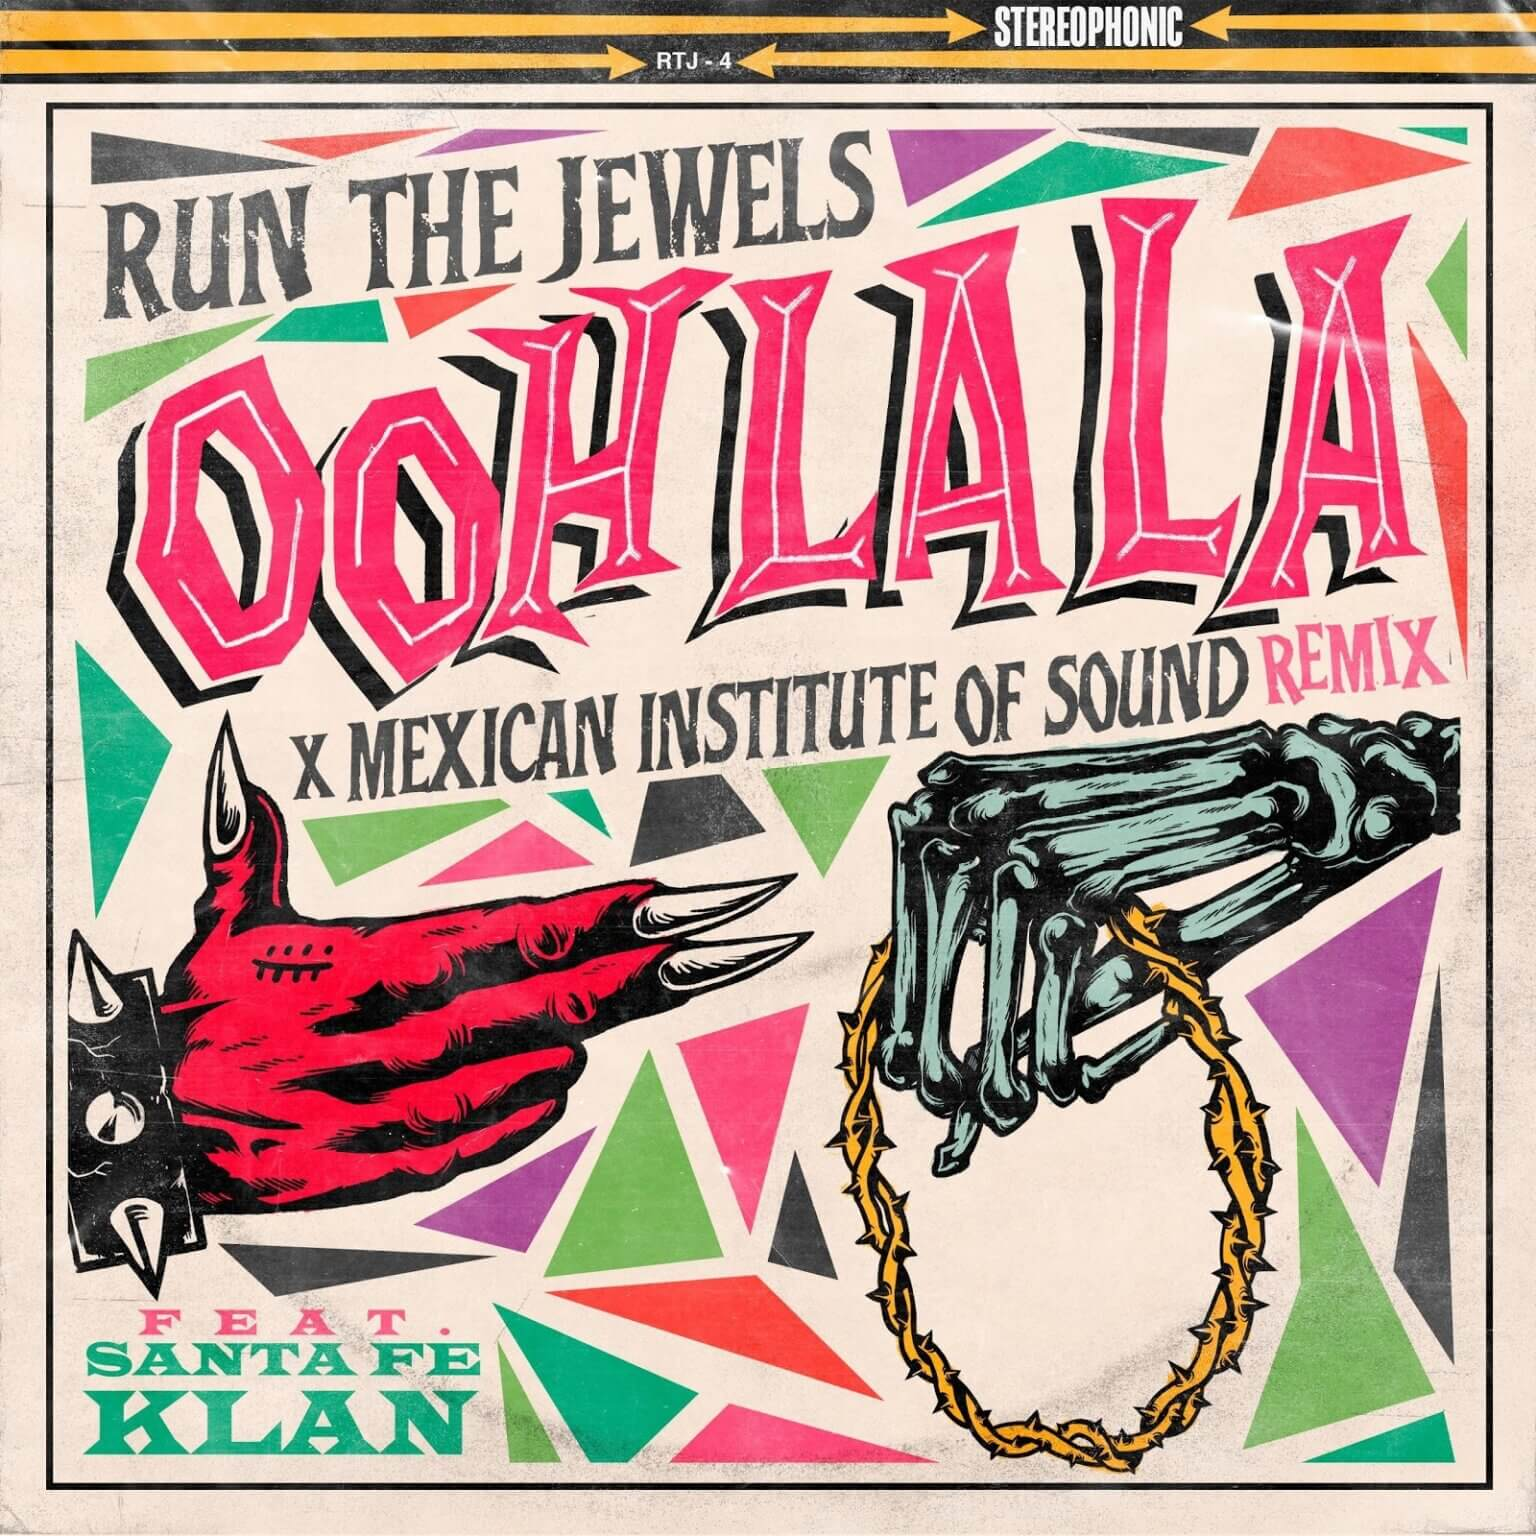 """Run The Jewels have shared a remix of the RTJ4 single """"ooh la la"""" by Mexican Institute of Sound"""